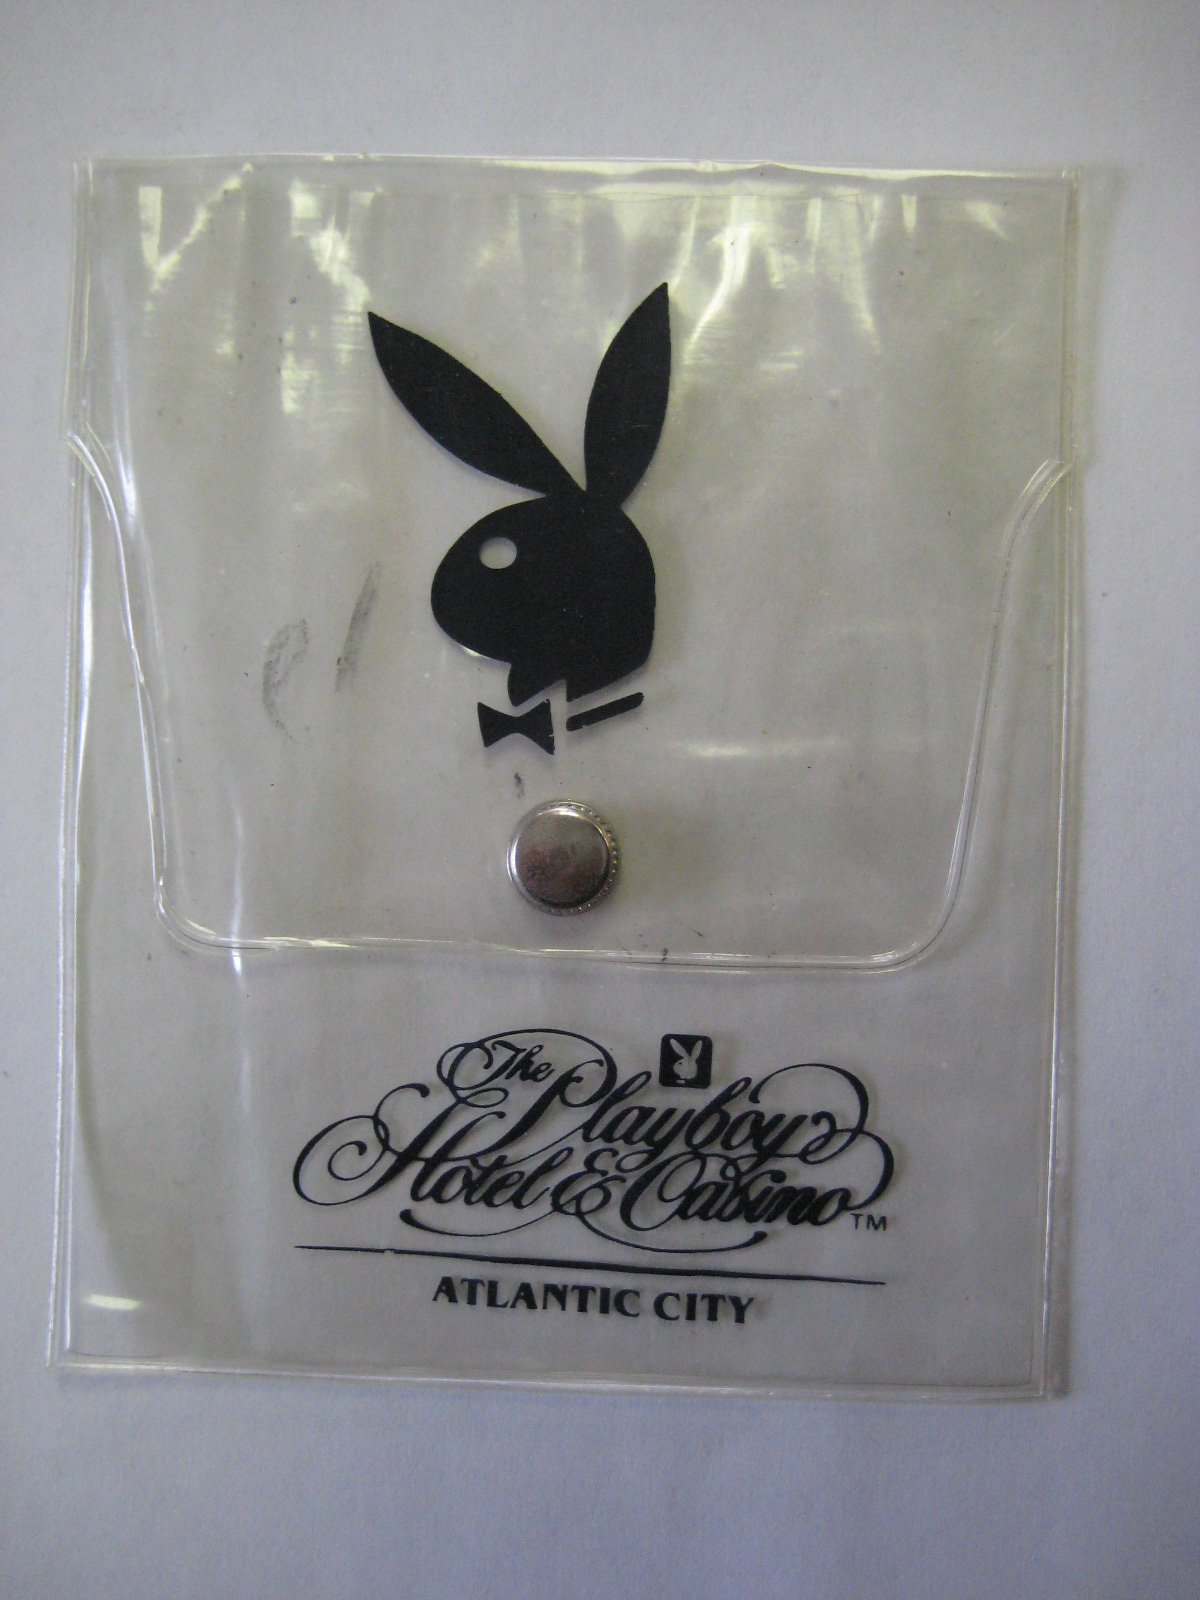 Playboy Hotel and Casino Atlantic CityClear Pouch